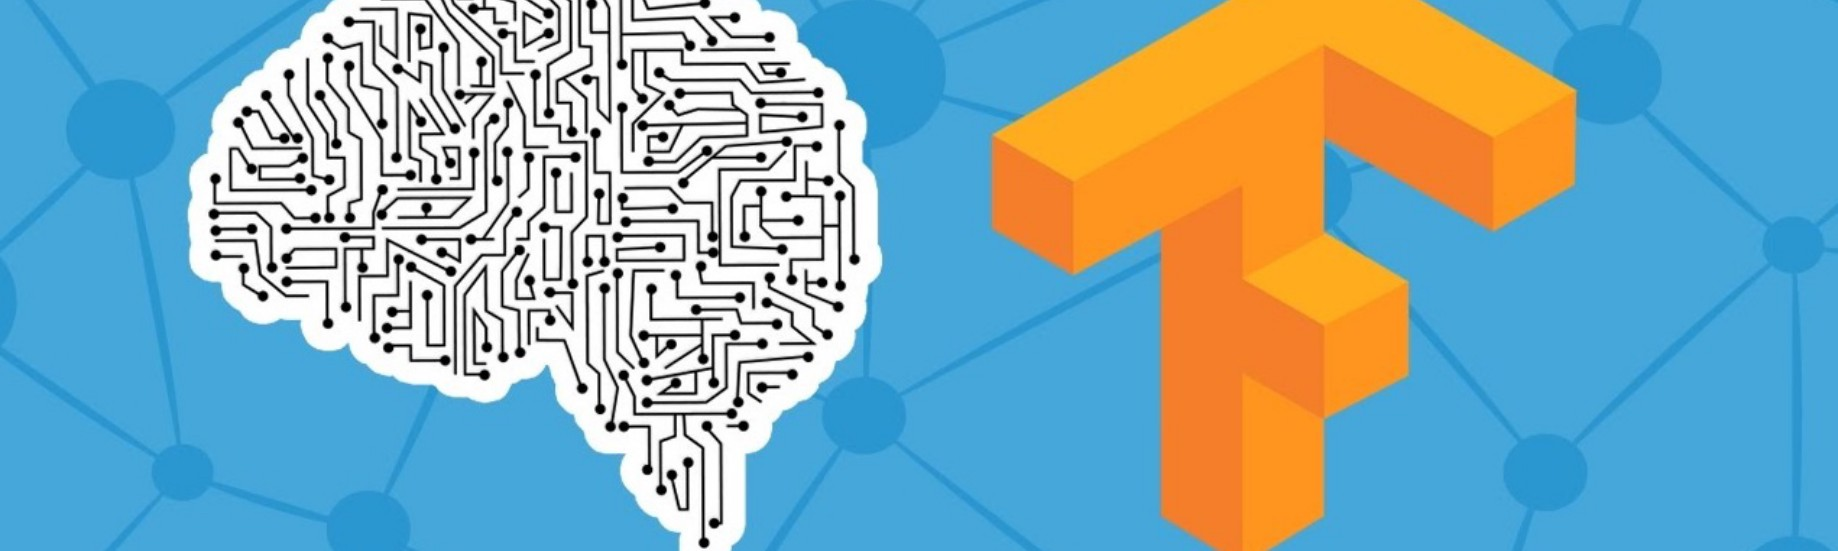 Top Tutorials To Learn Deep Learning With Python - Quick Code - Medium